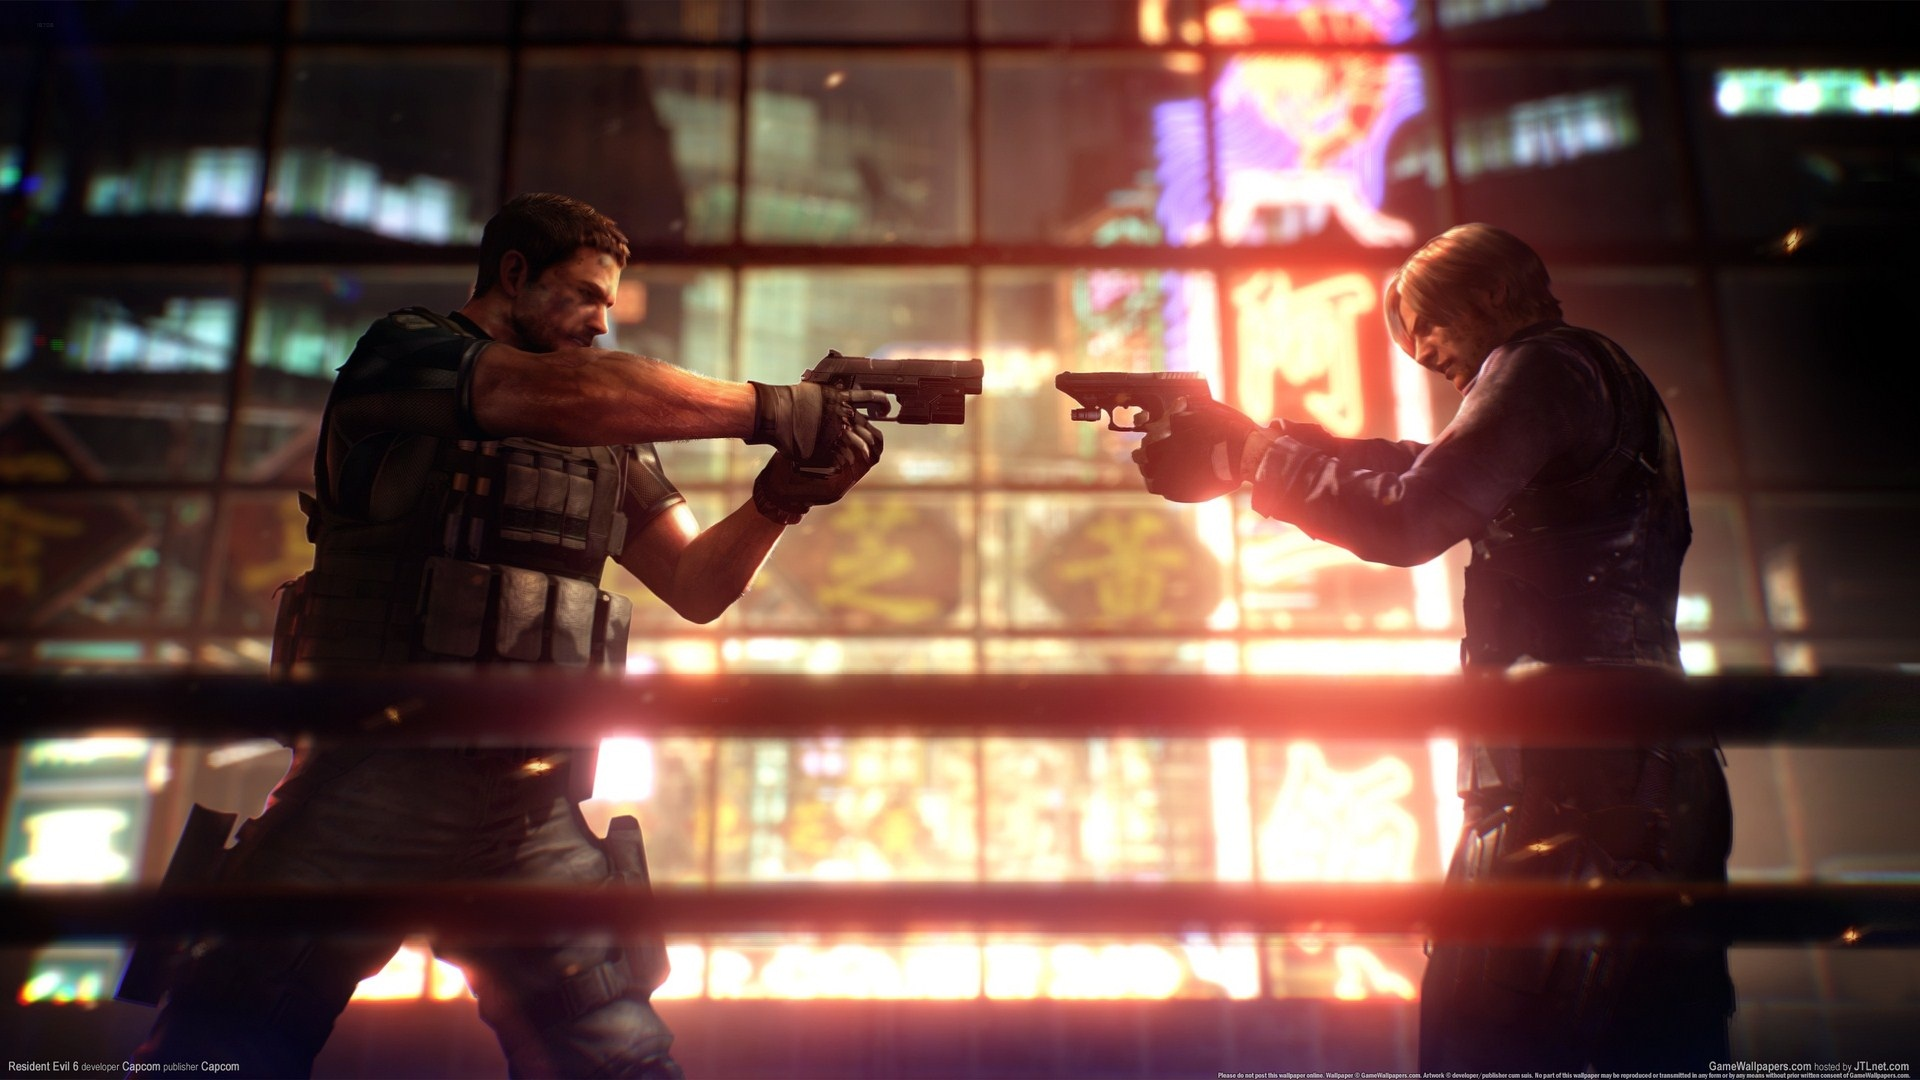 Resident Evil 6 HD game wallpapers #16 - 1920x1080